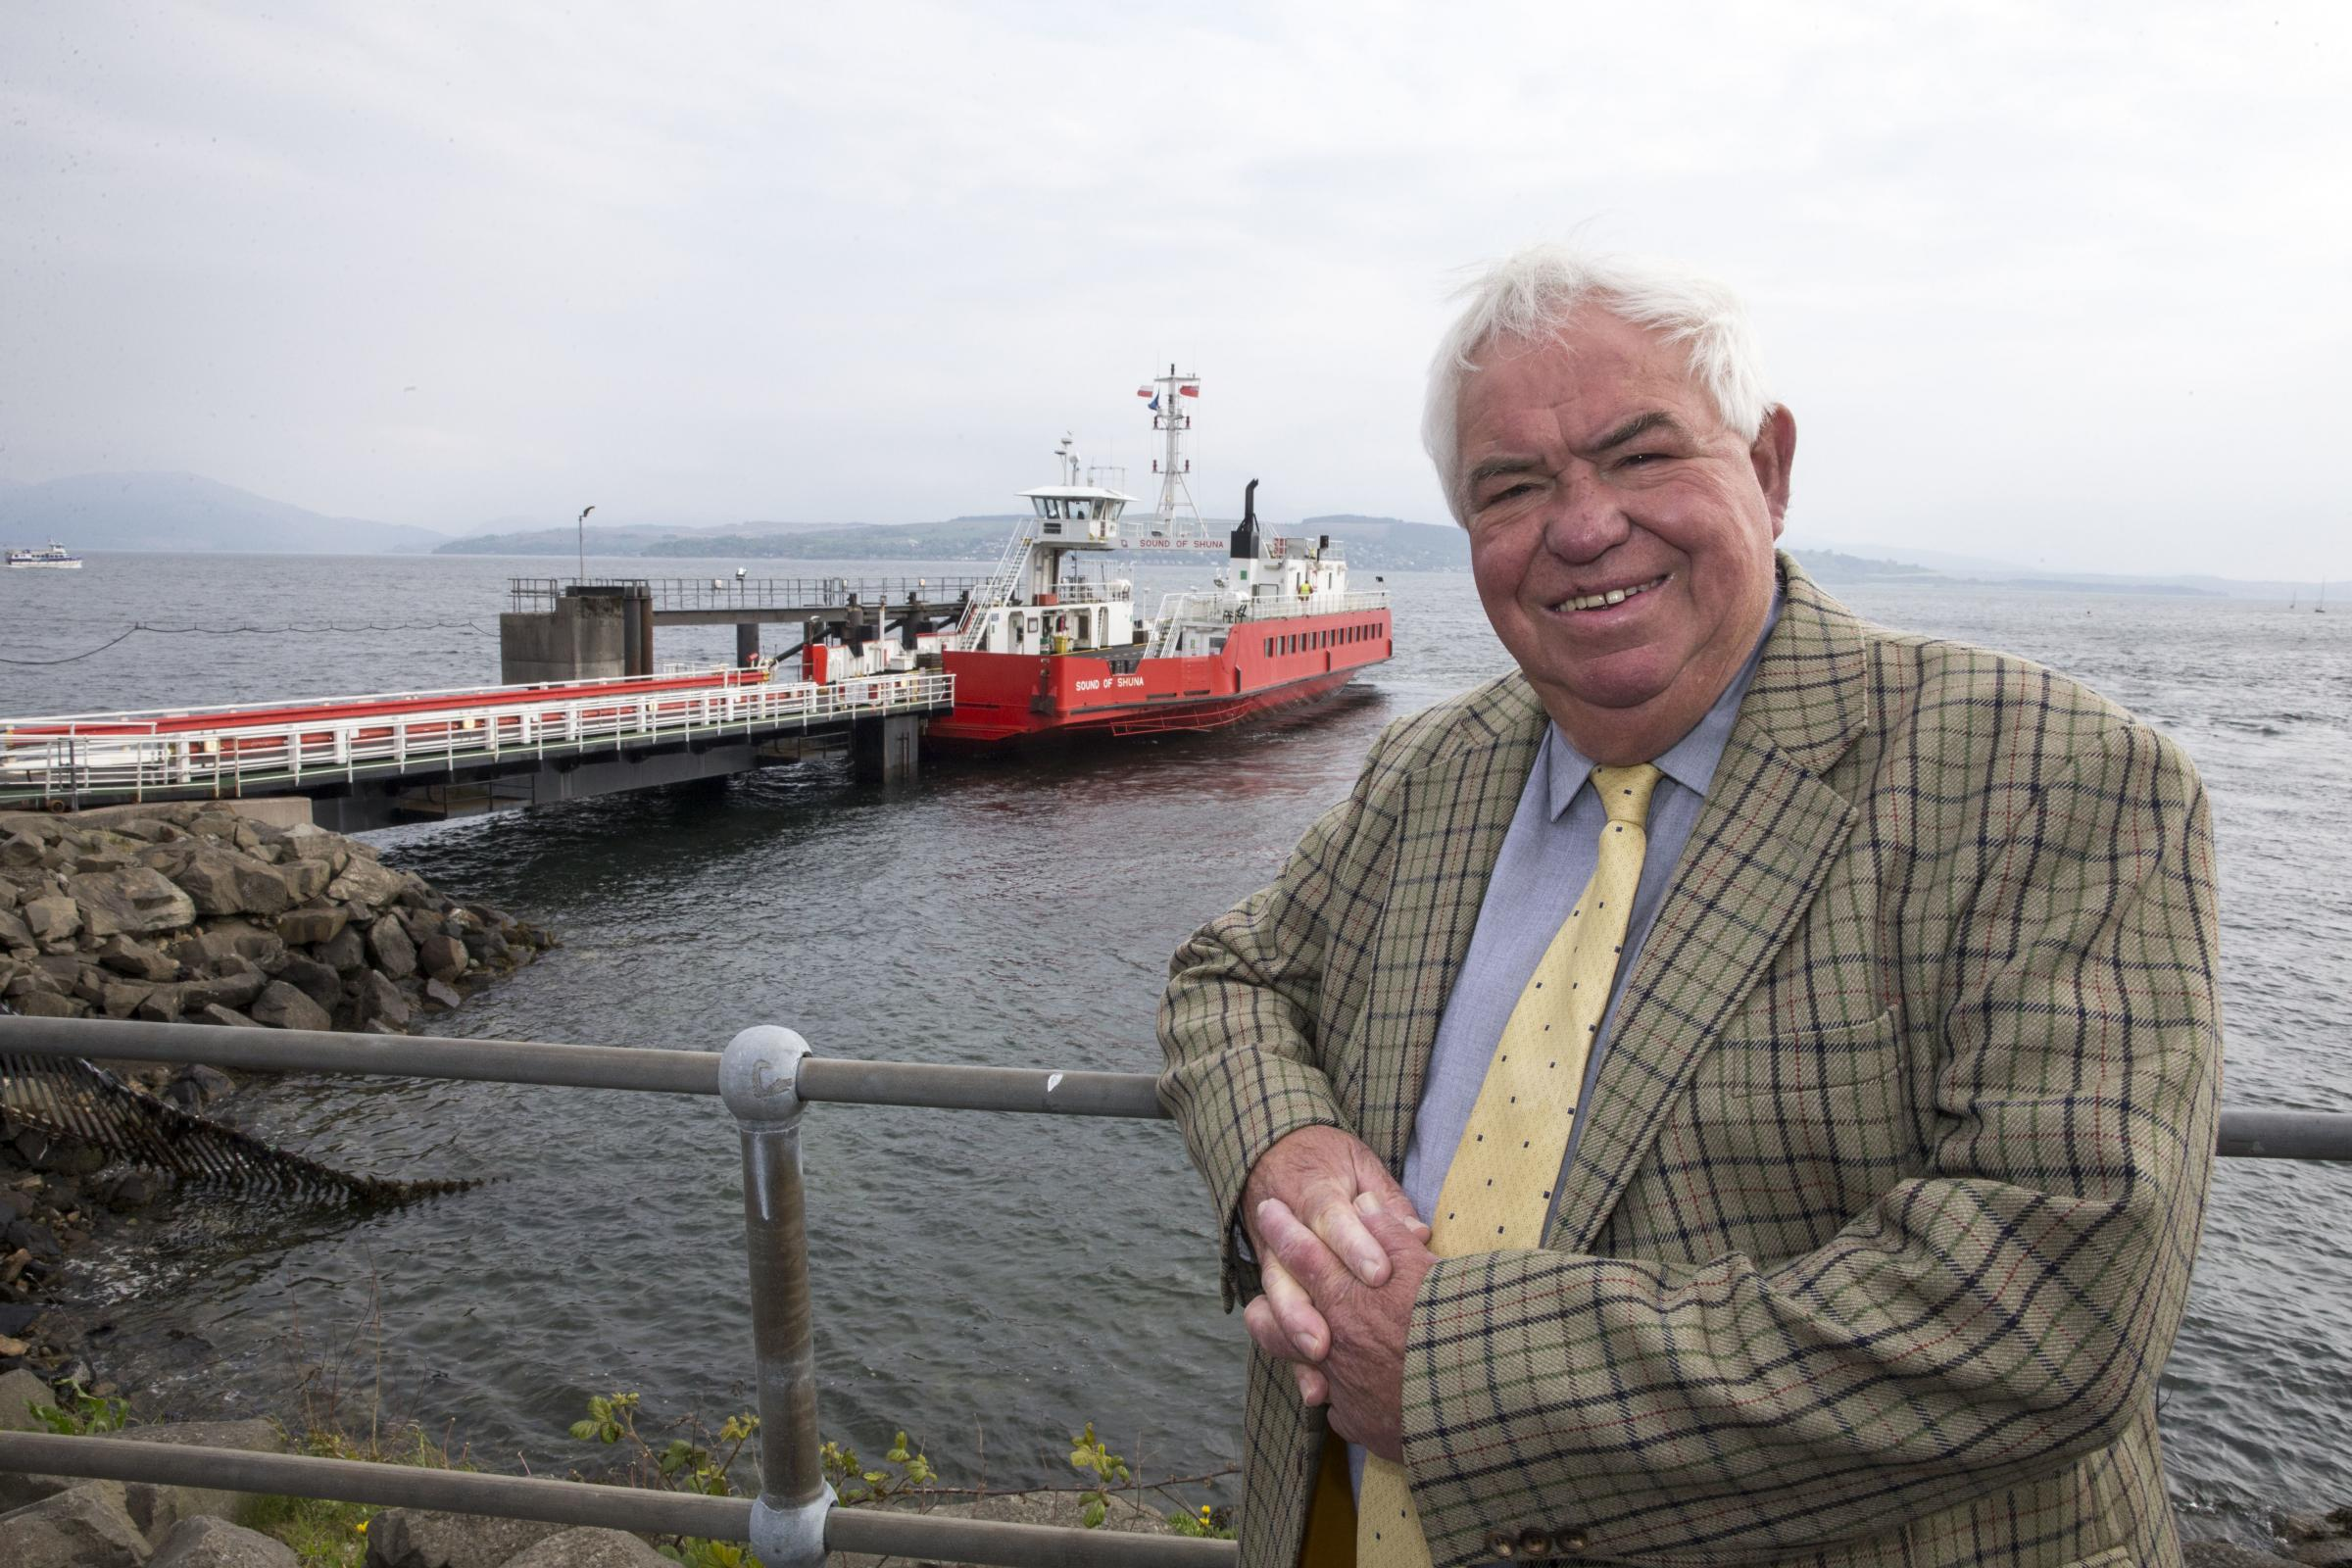 Outgoing ferry boss: Time to break up islands network